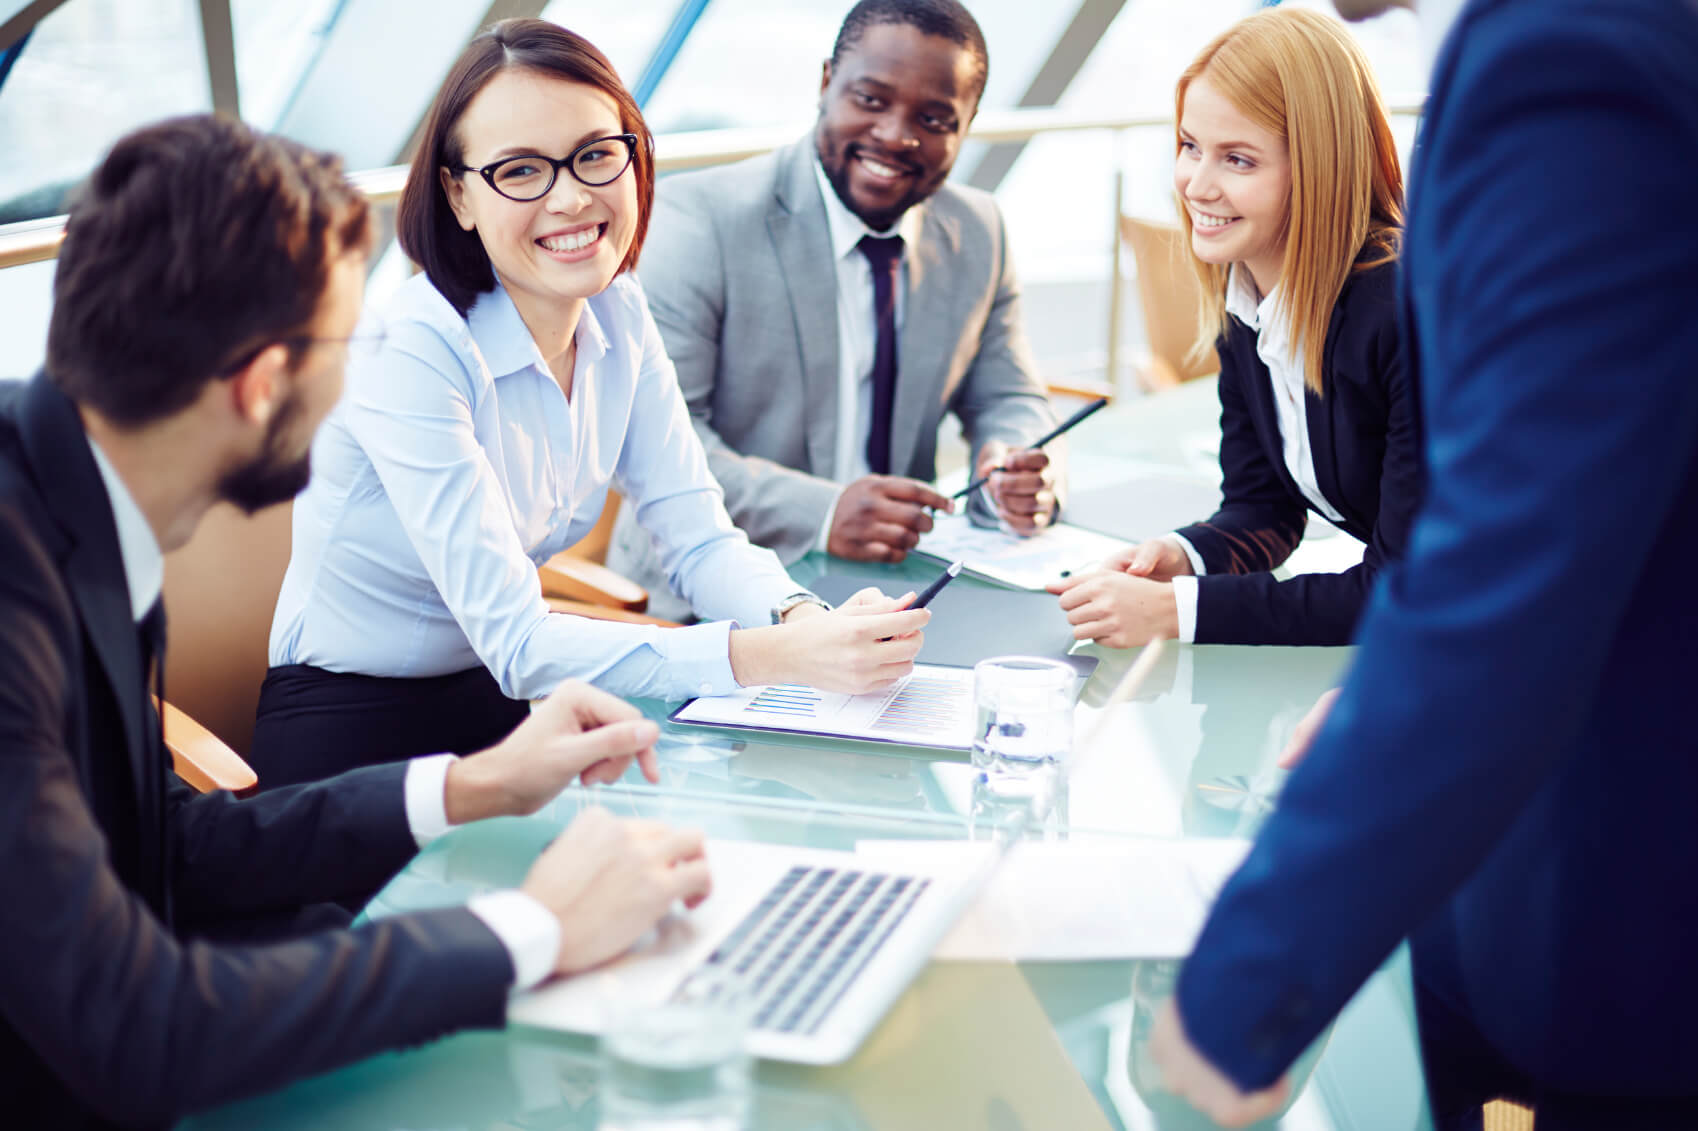 4 Keys to Building a Winning Small Business Team